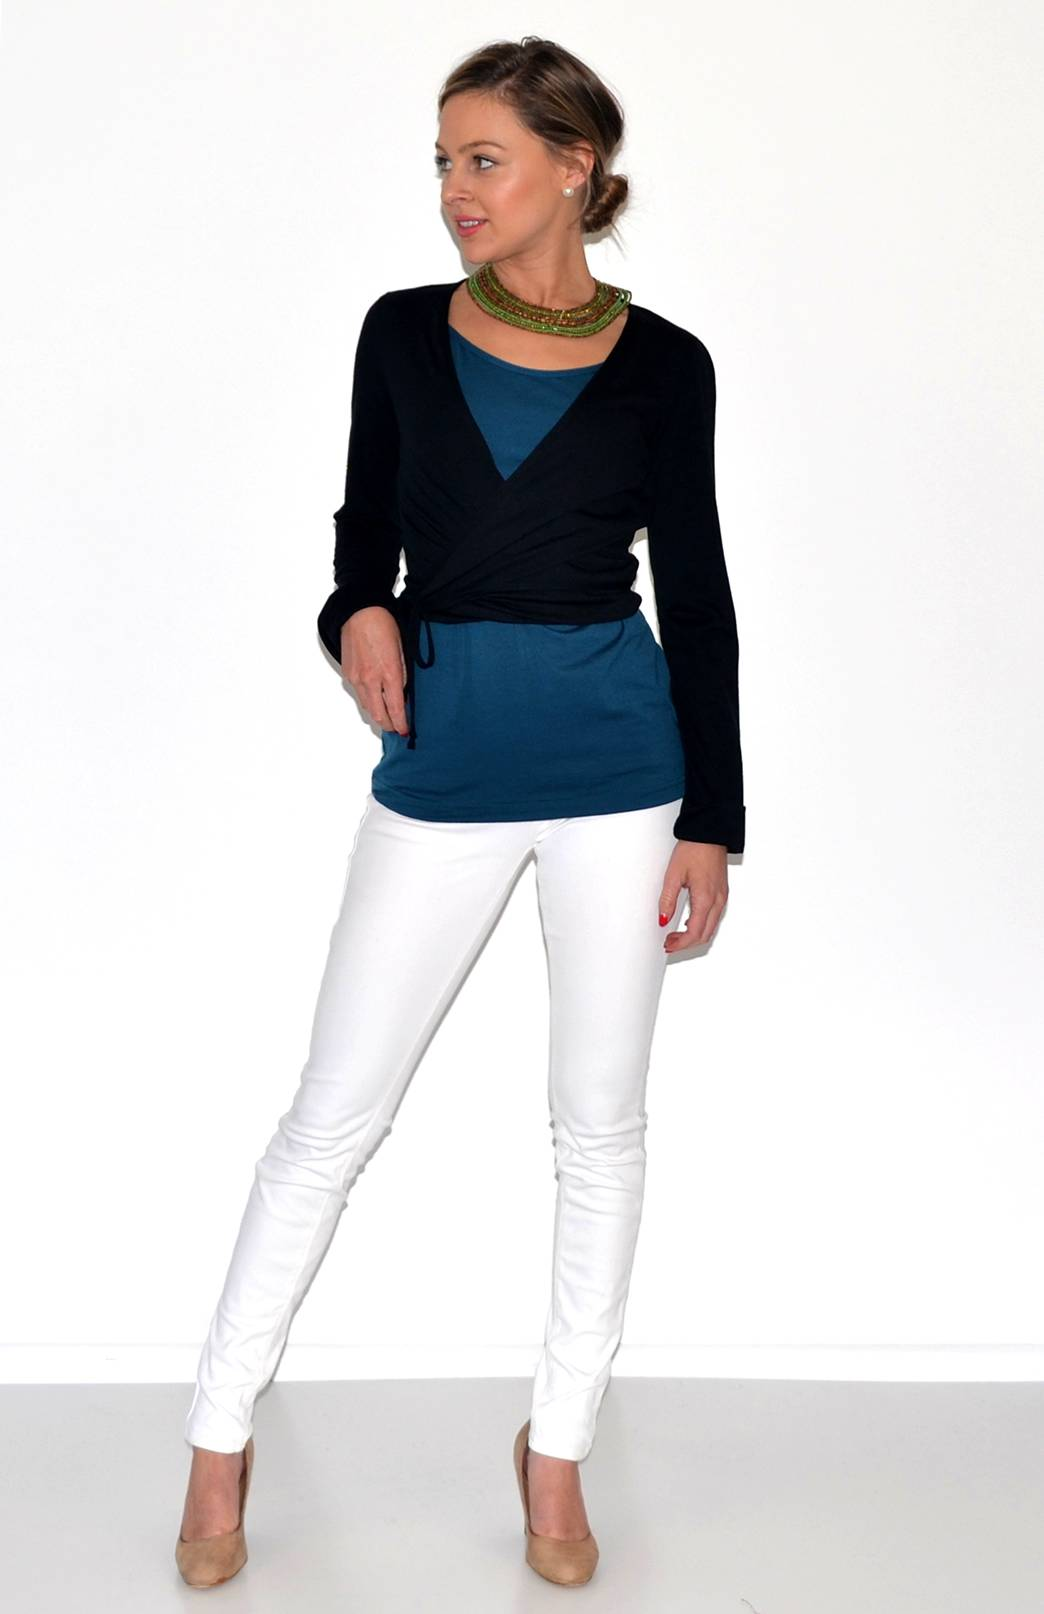 Wrap Top - Women's Black Long Sleeved Wrap Top with Ties - Smitten Merino Tasmania Australia